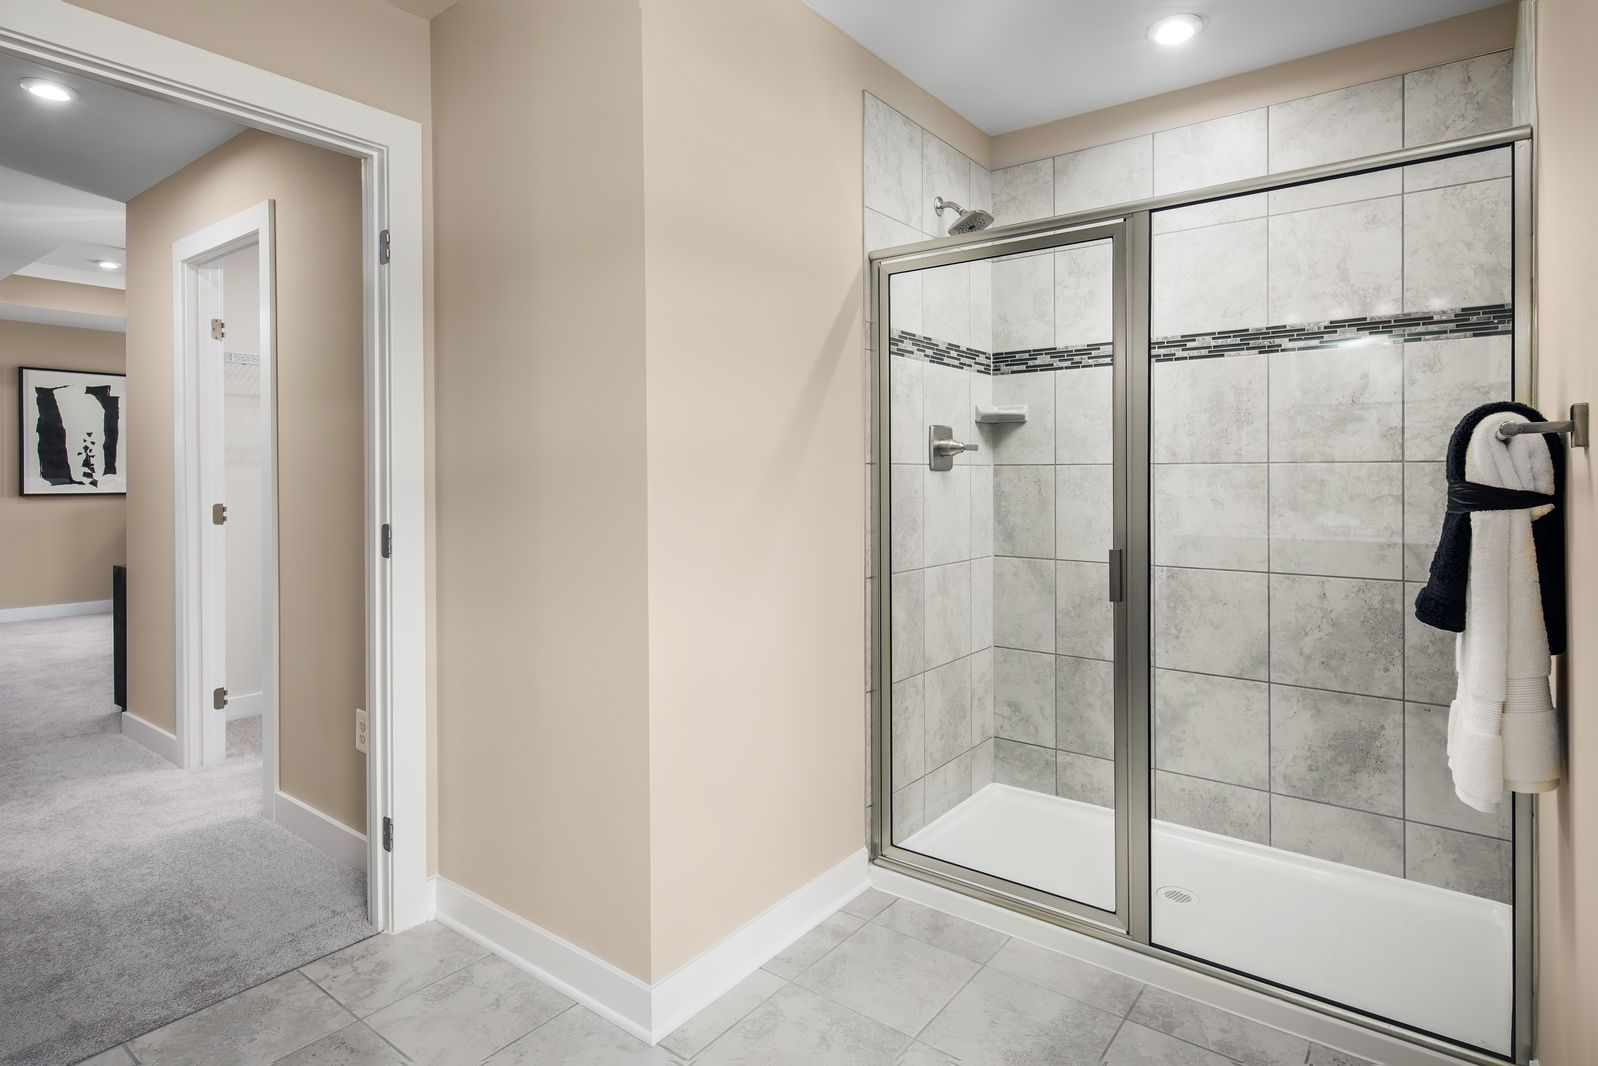 Bathroom featured in the Powell By Ryan Homes in Washington, MD